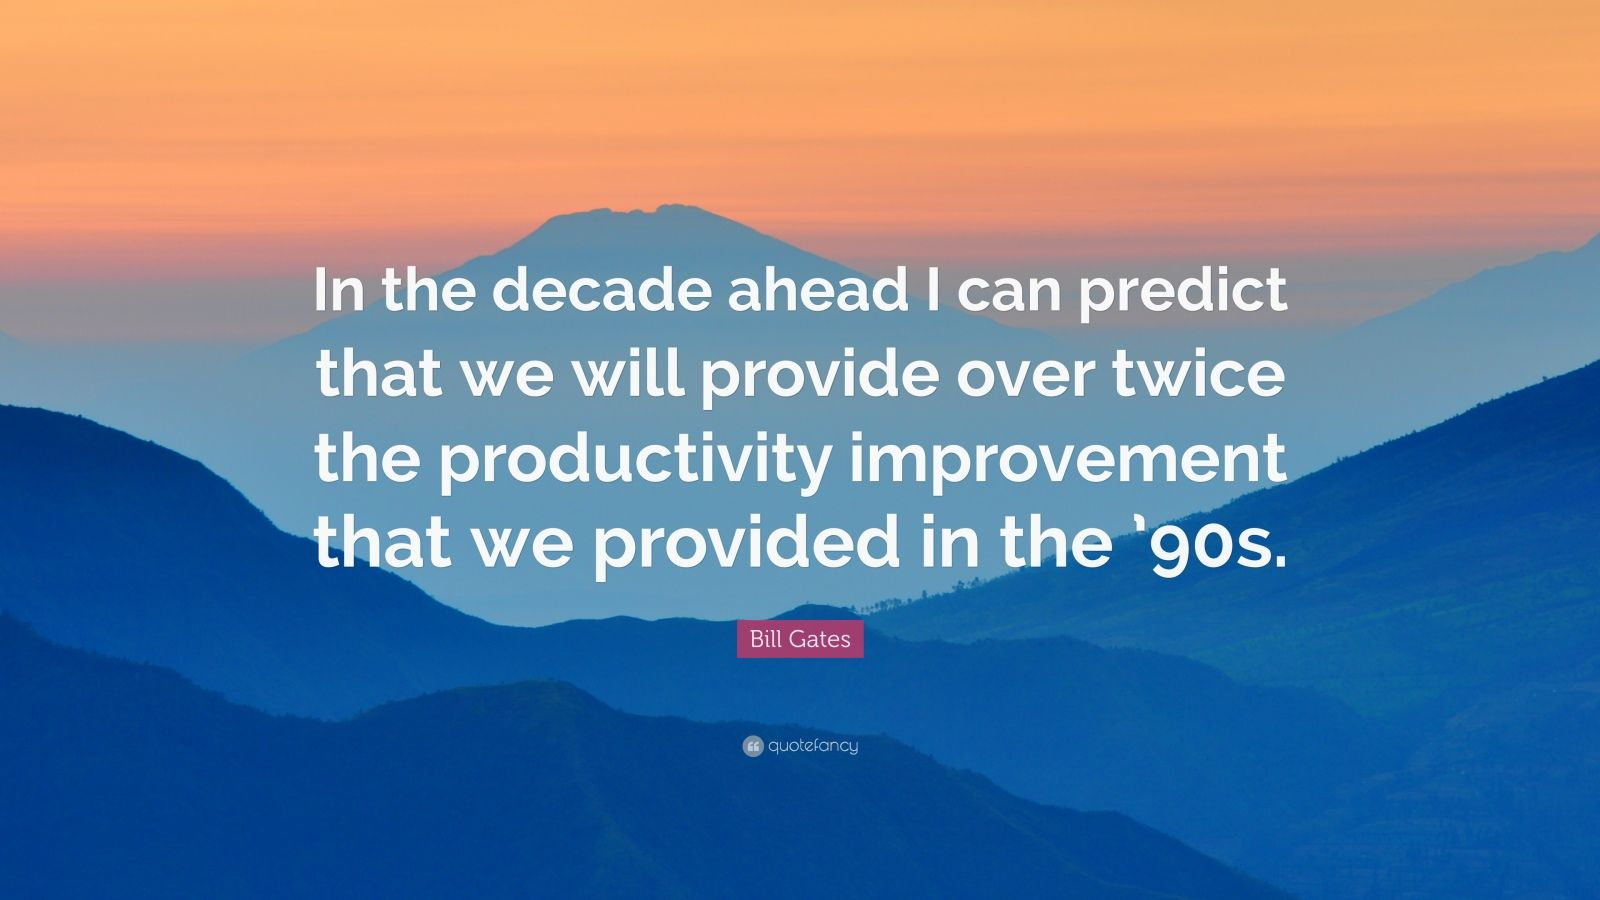 """Bill Gates Quote: """"In the decade ahead I can predict that we will provide over twice the productivity improvement that we provided in the '90s."""""""